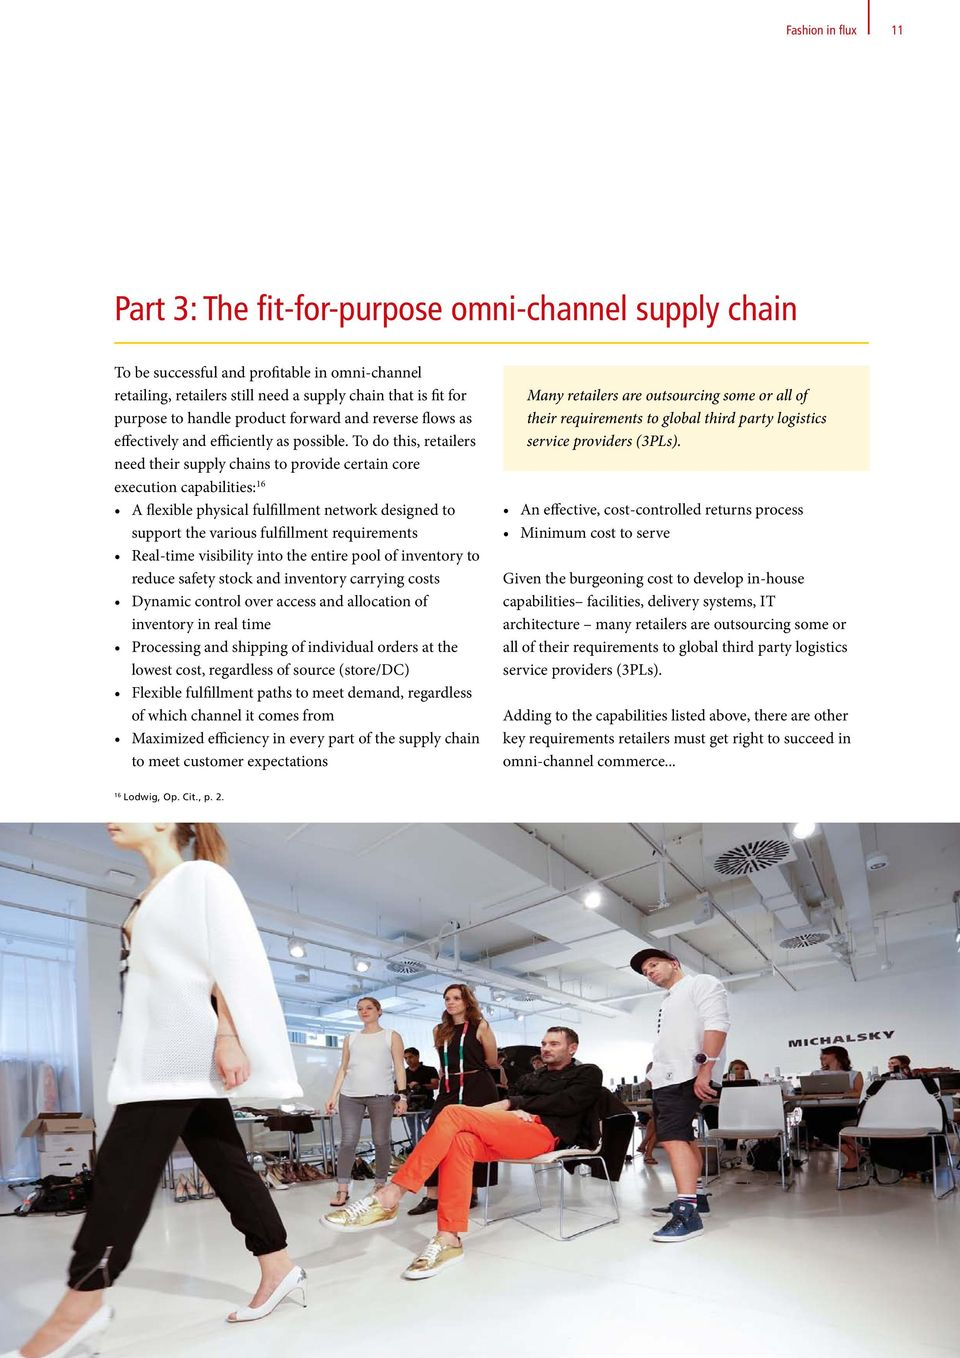 To do this, retailers need their supply chains to provide certain core execution capabilities: 16 A flexible physical fulfillment network designed to support the various fulfillment requirements